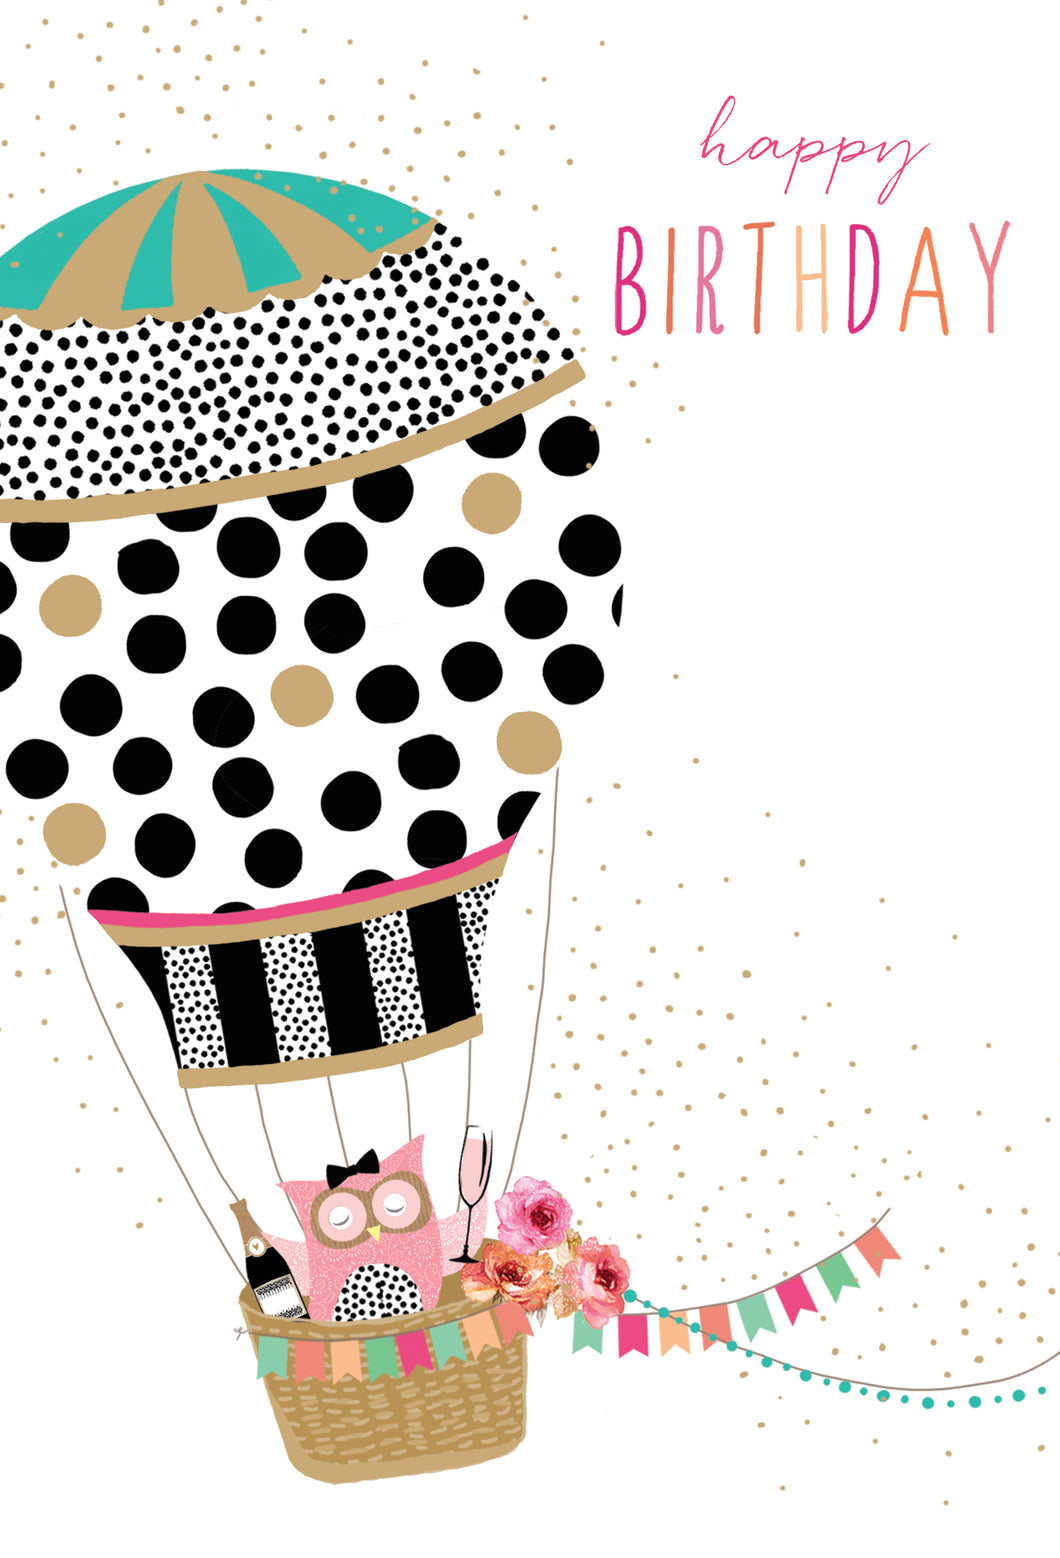 Birthday Card Flying Air balloon Sara Miller - Cardmore